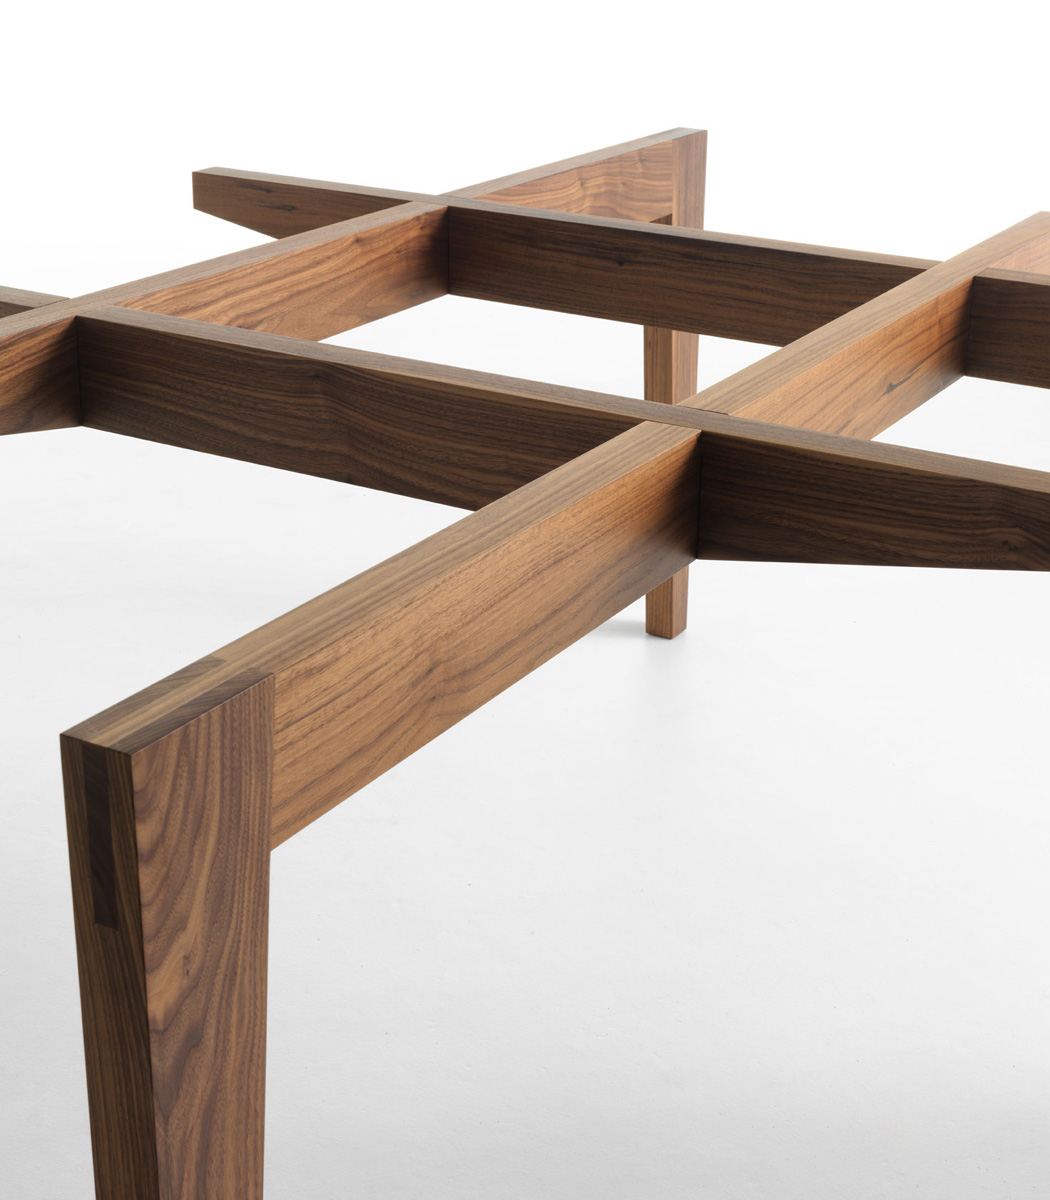 Autoreggente dining table from Horm, designed by Patrizia Bertolini